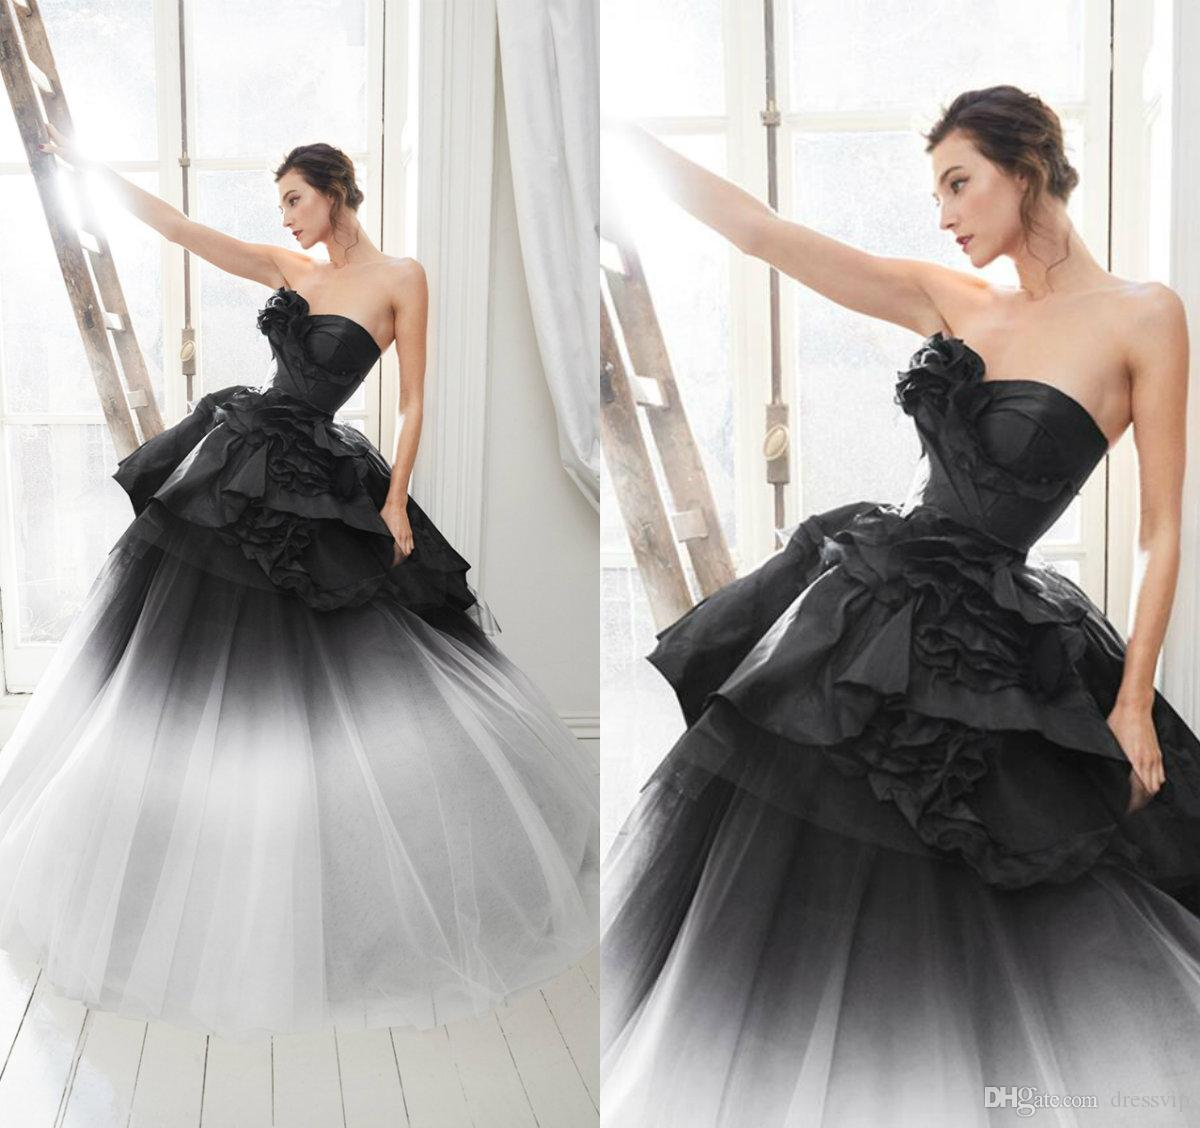 2020 Marchesa Gradient Evening Dresses Sweetheart Ruffles Tiered Skirts New Prom Dress Party A Line Formal Occasion Gowns